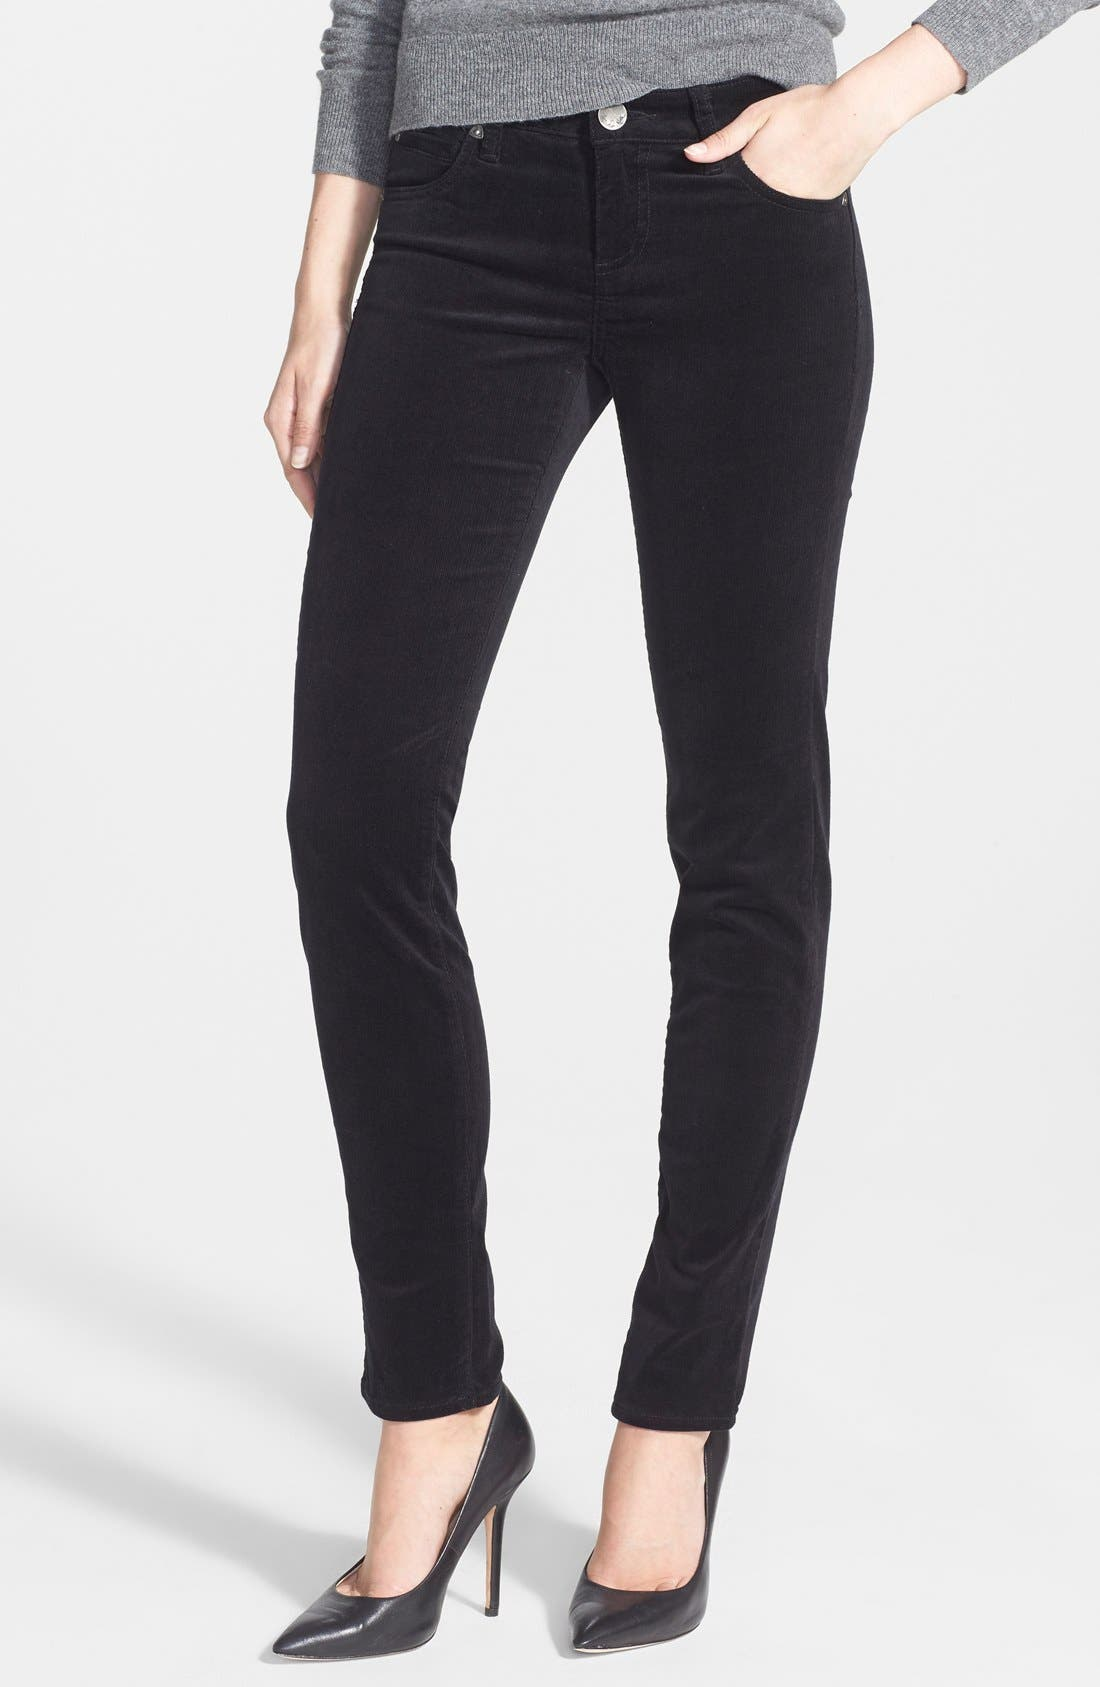 Alternate Image 1 Selected - KUT from the Kloth Diana Stretch Corduroy Skinny Pants (Regular & Petite)